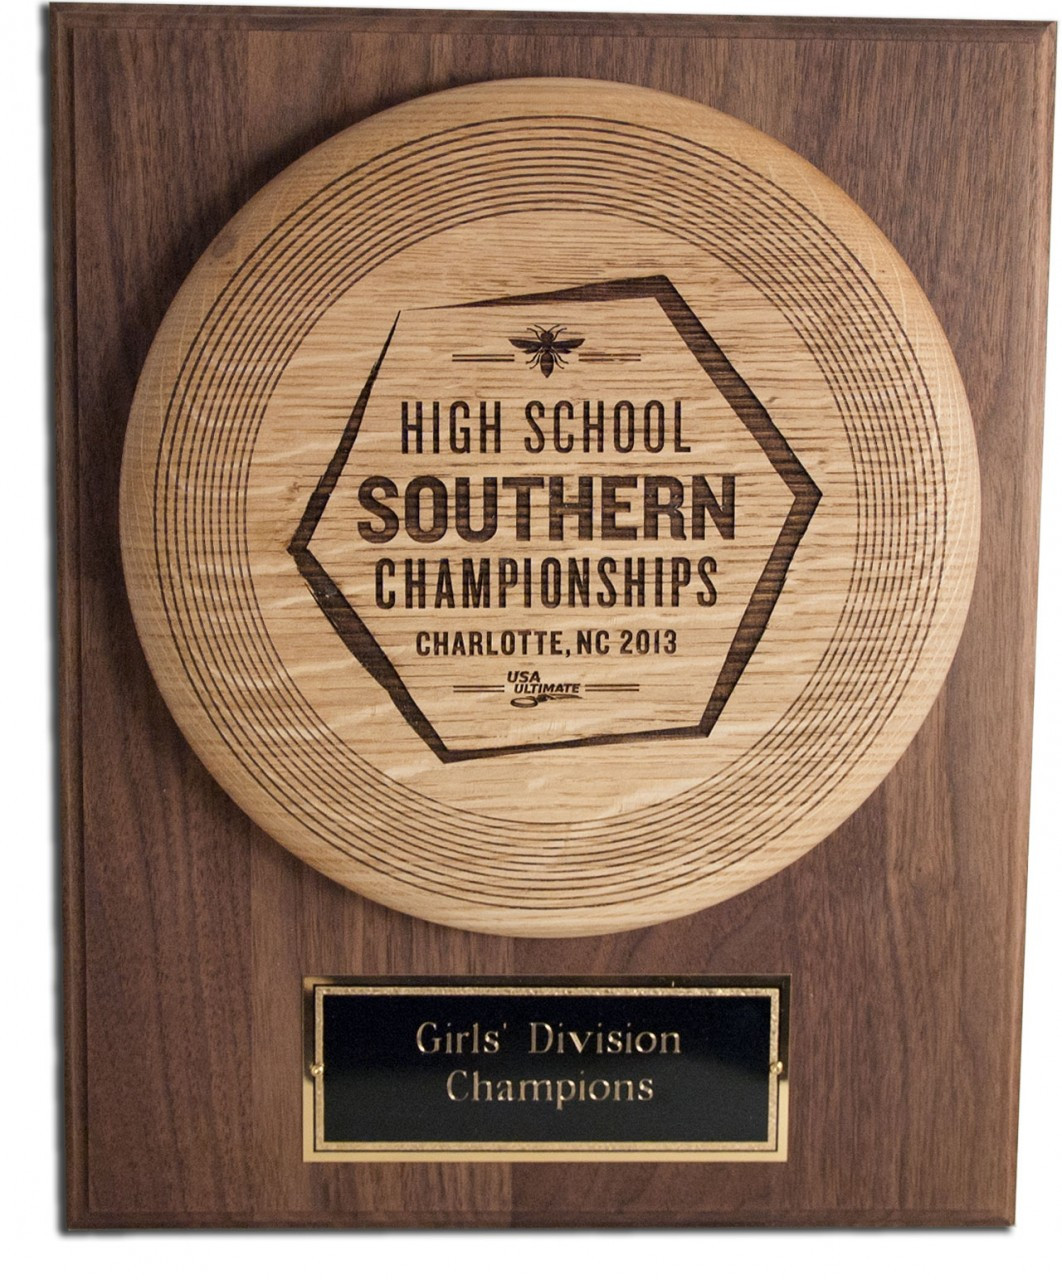 CUSTOM ENGRAVED WOOD ULTIMATE TROPHY WITH PLAQUE